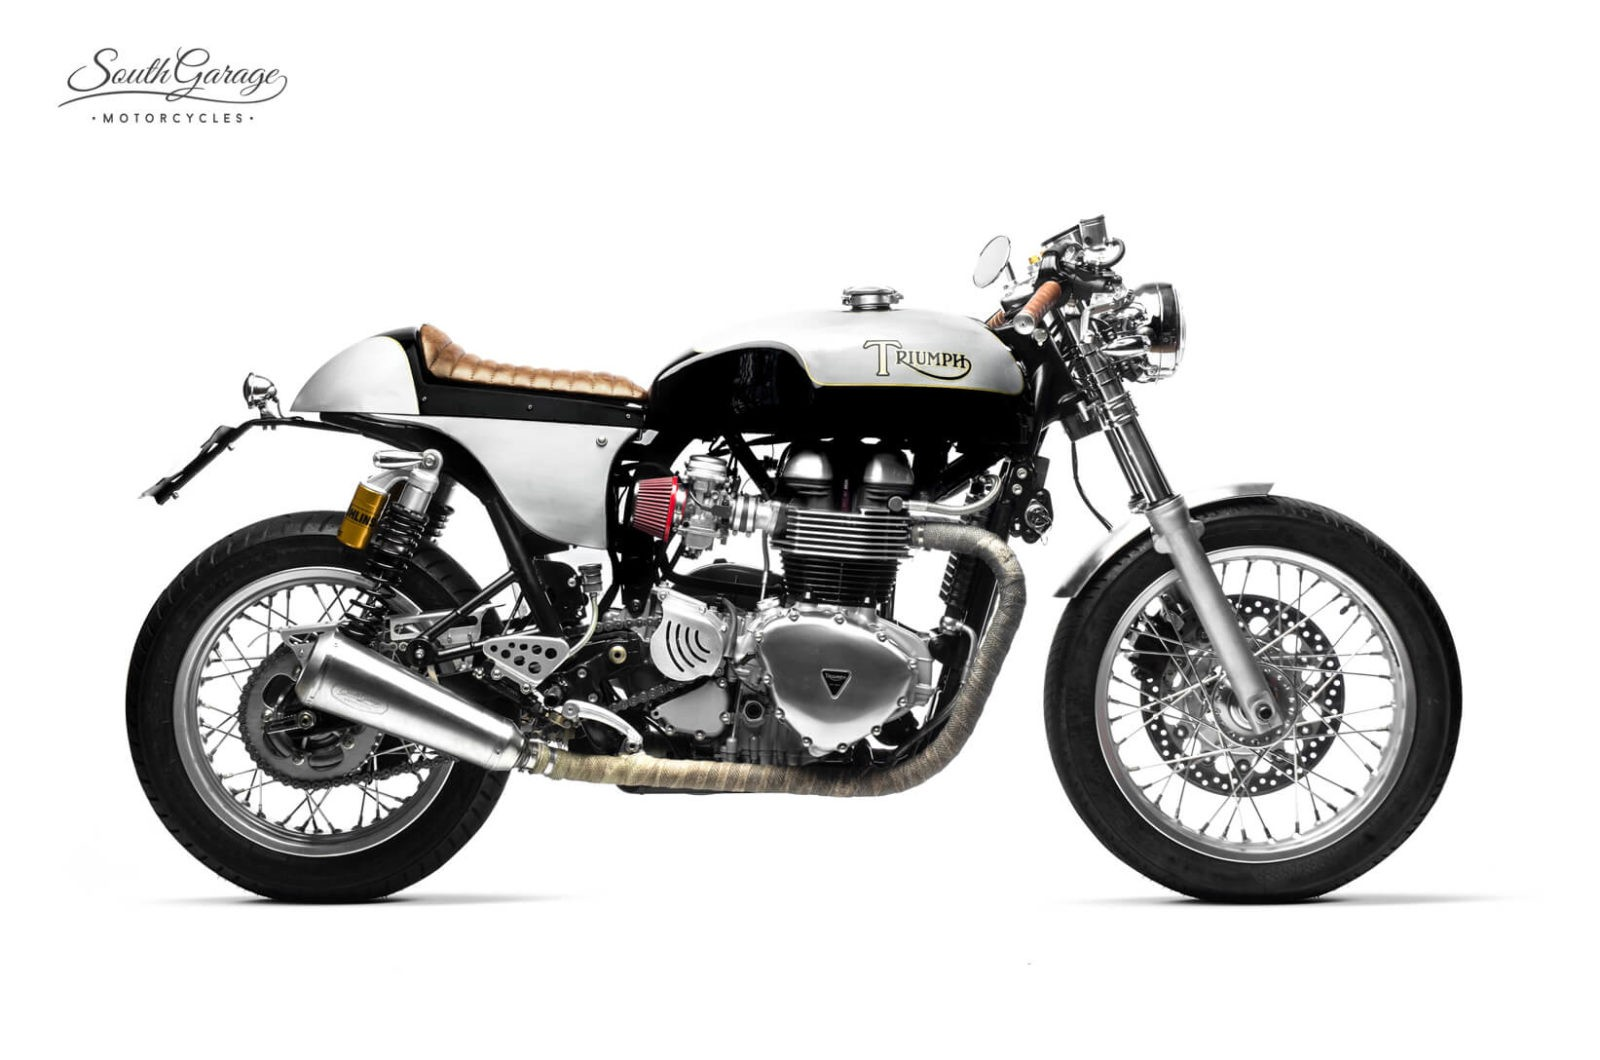 Triumph Truxton Café Racer by South Garage